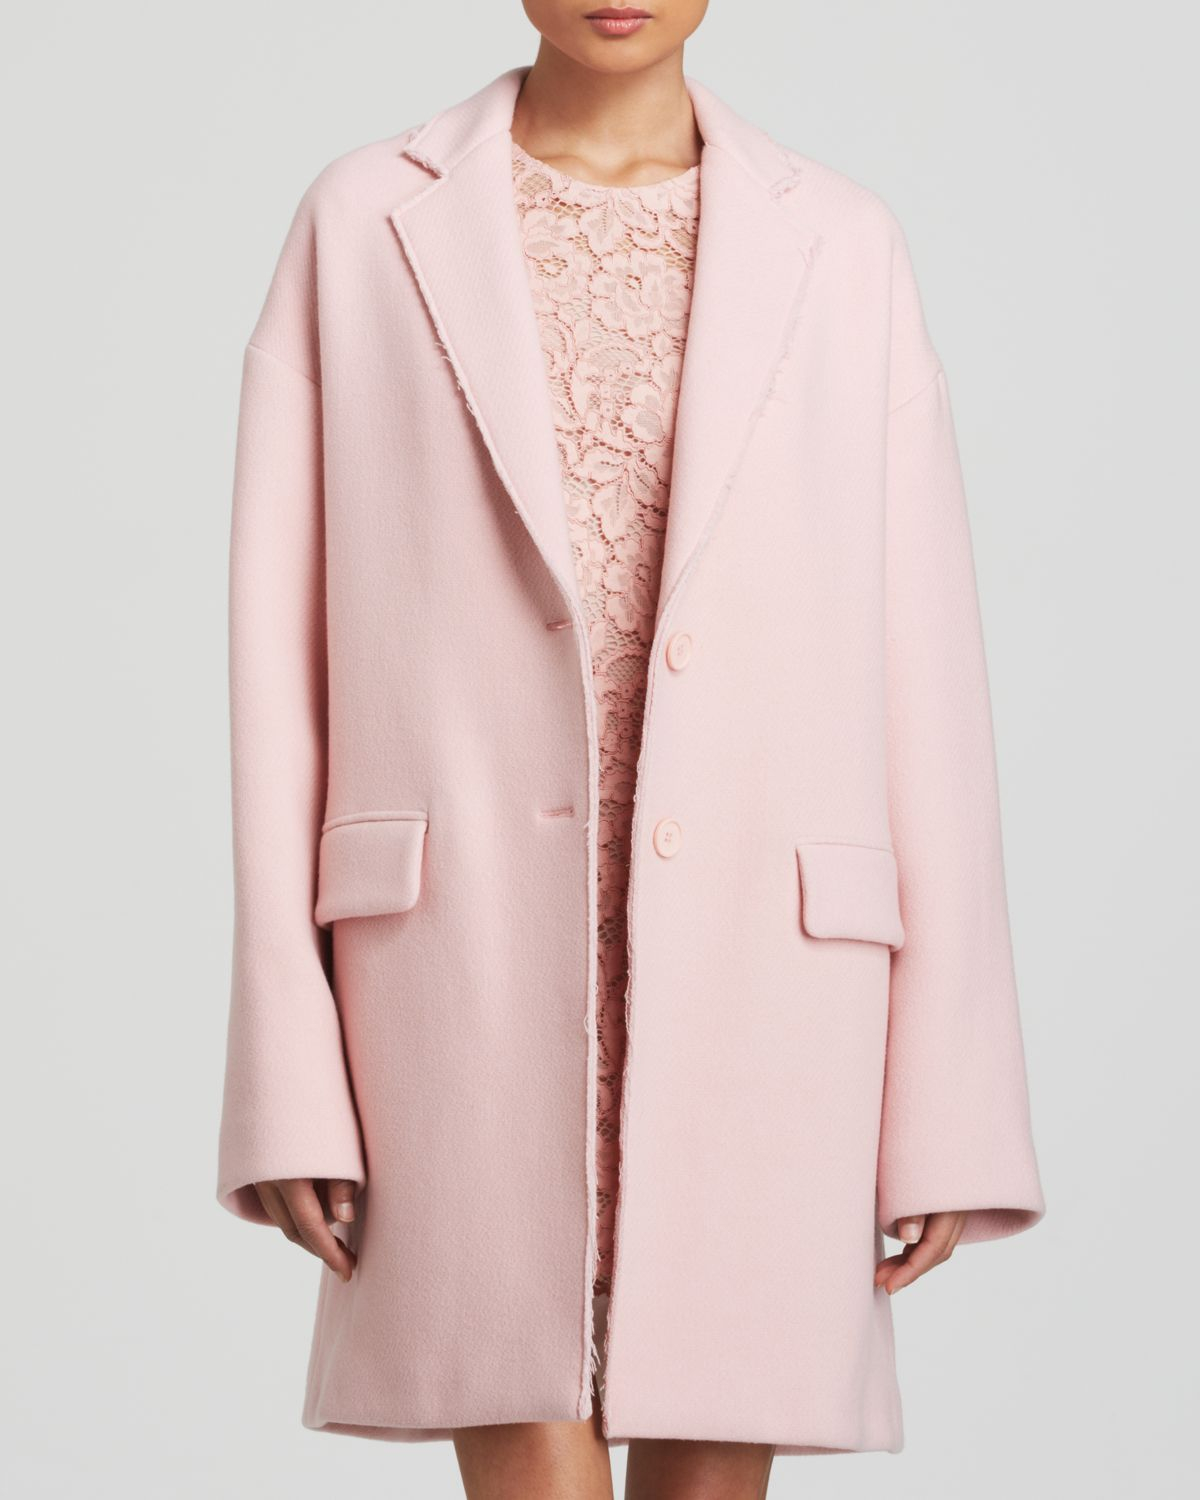 Dkny Wool Blend Coat in Pink | Lyst